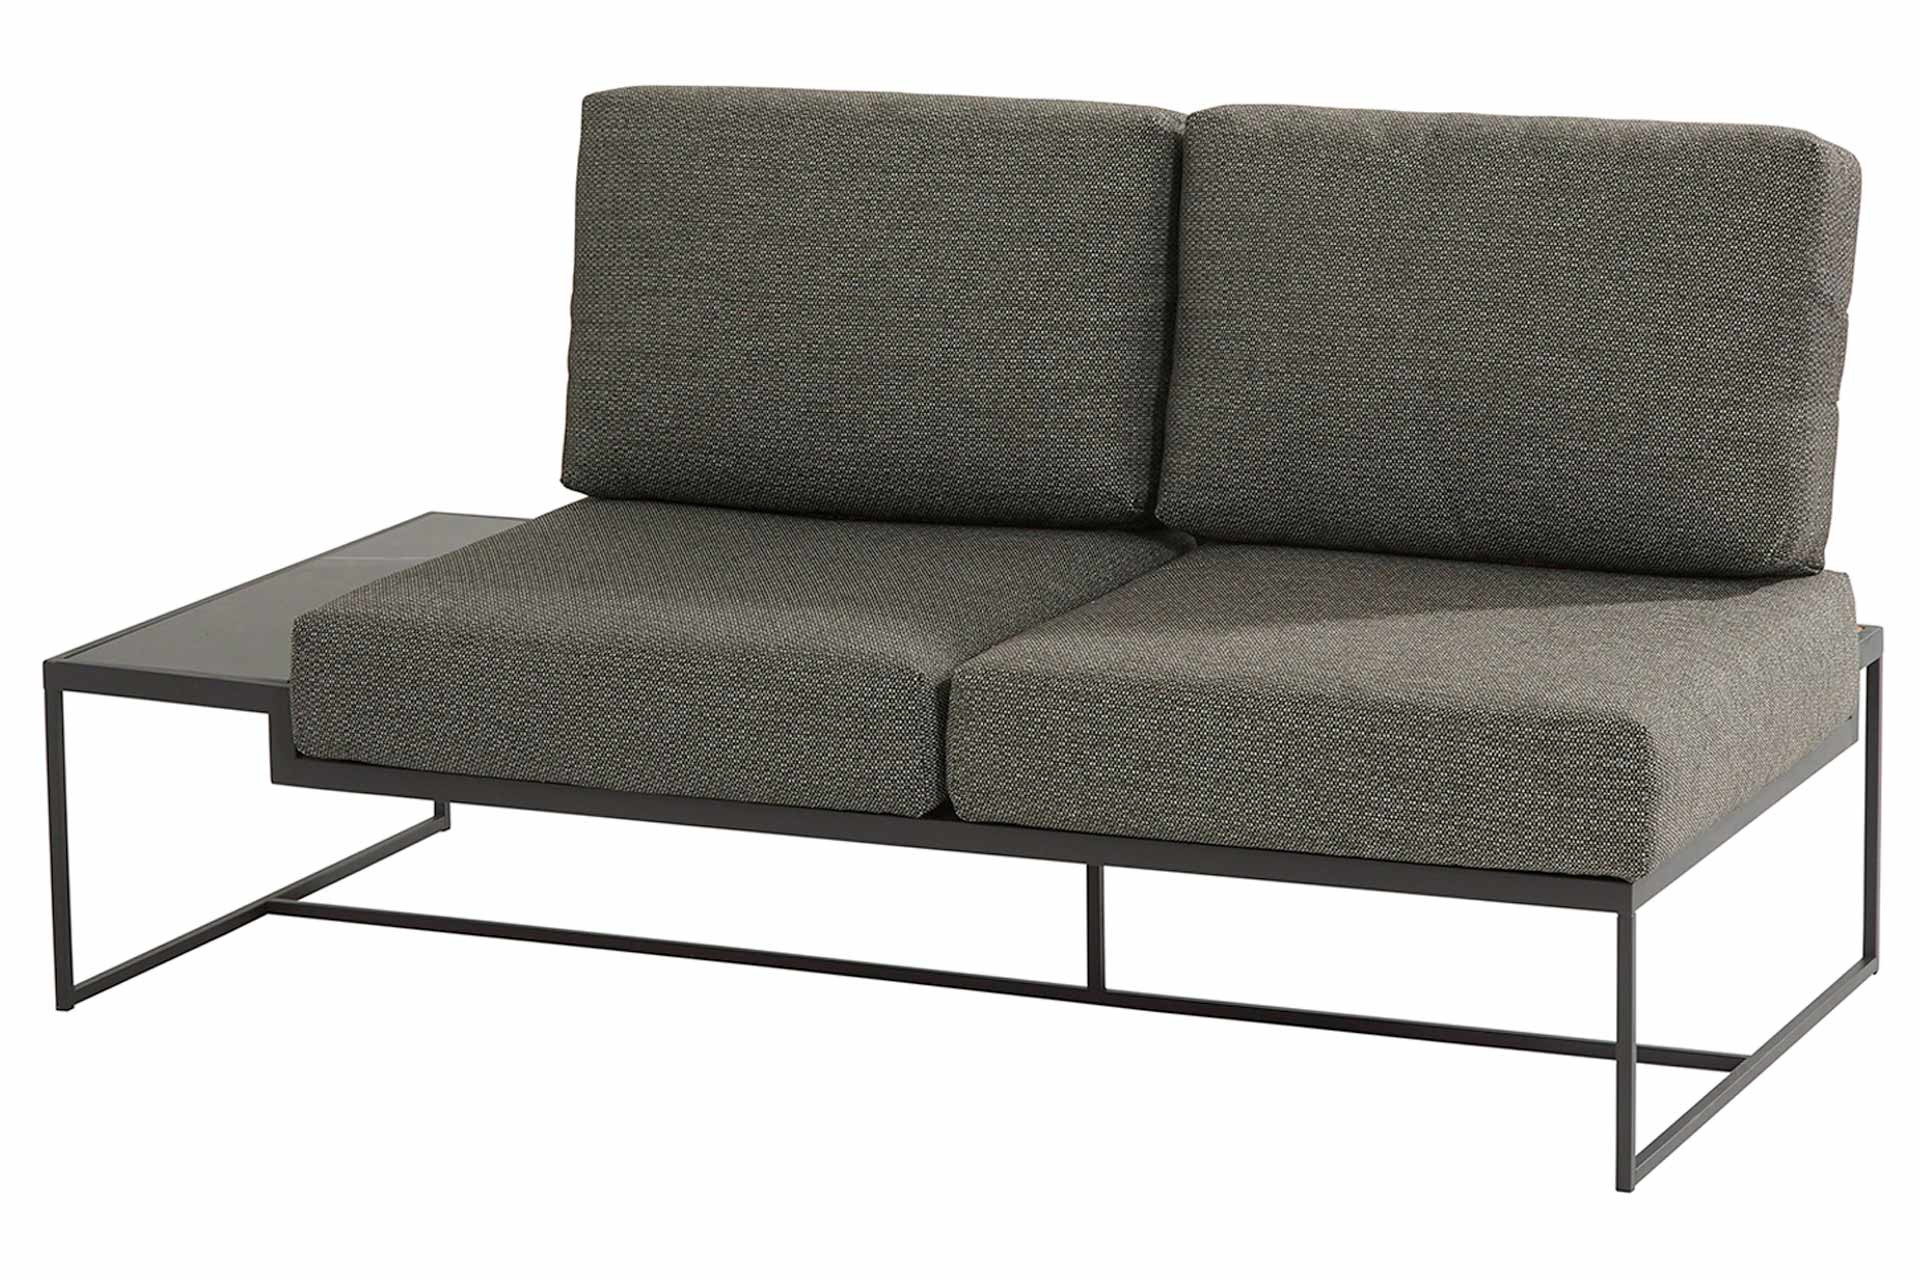 Patio platform 2 seater right with 4 cushions